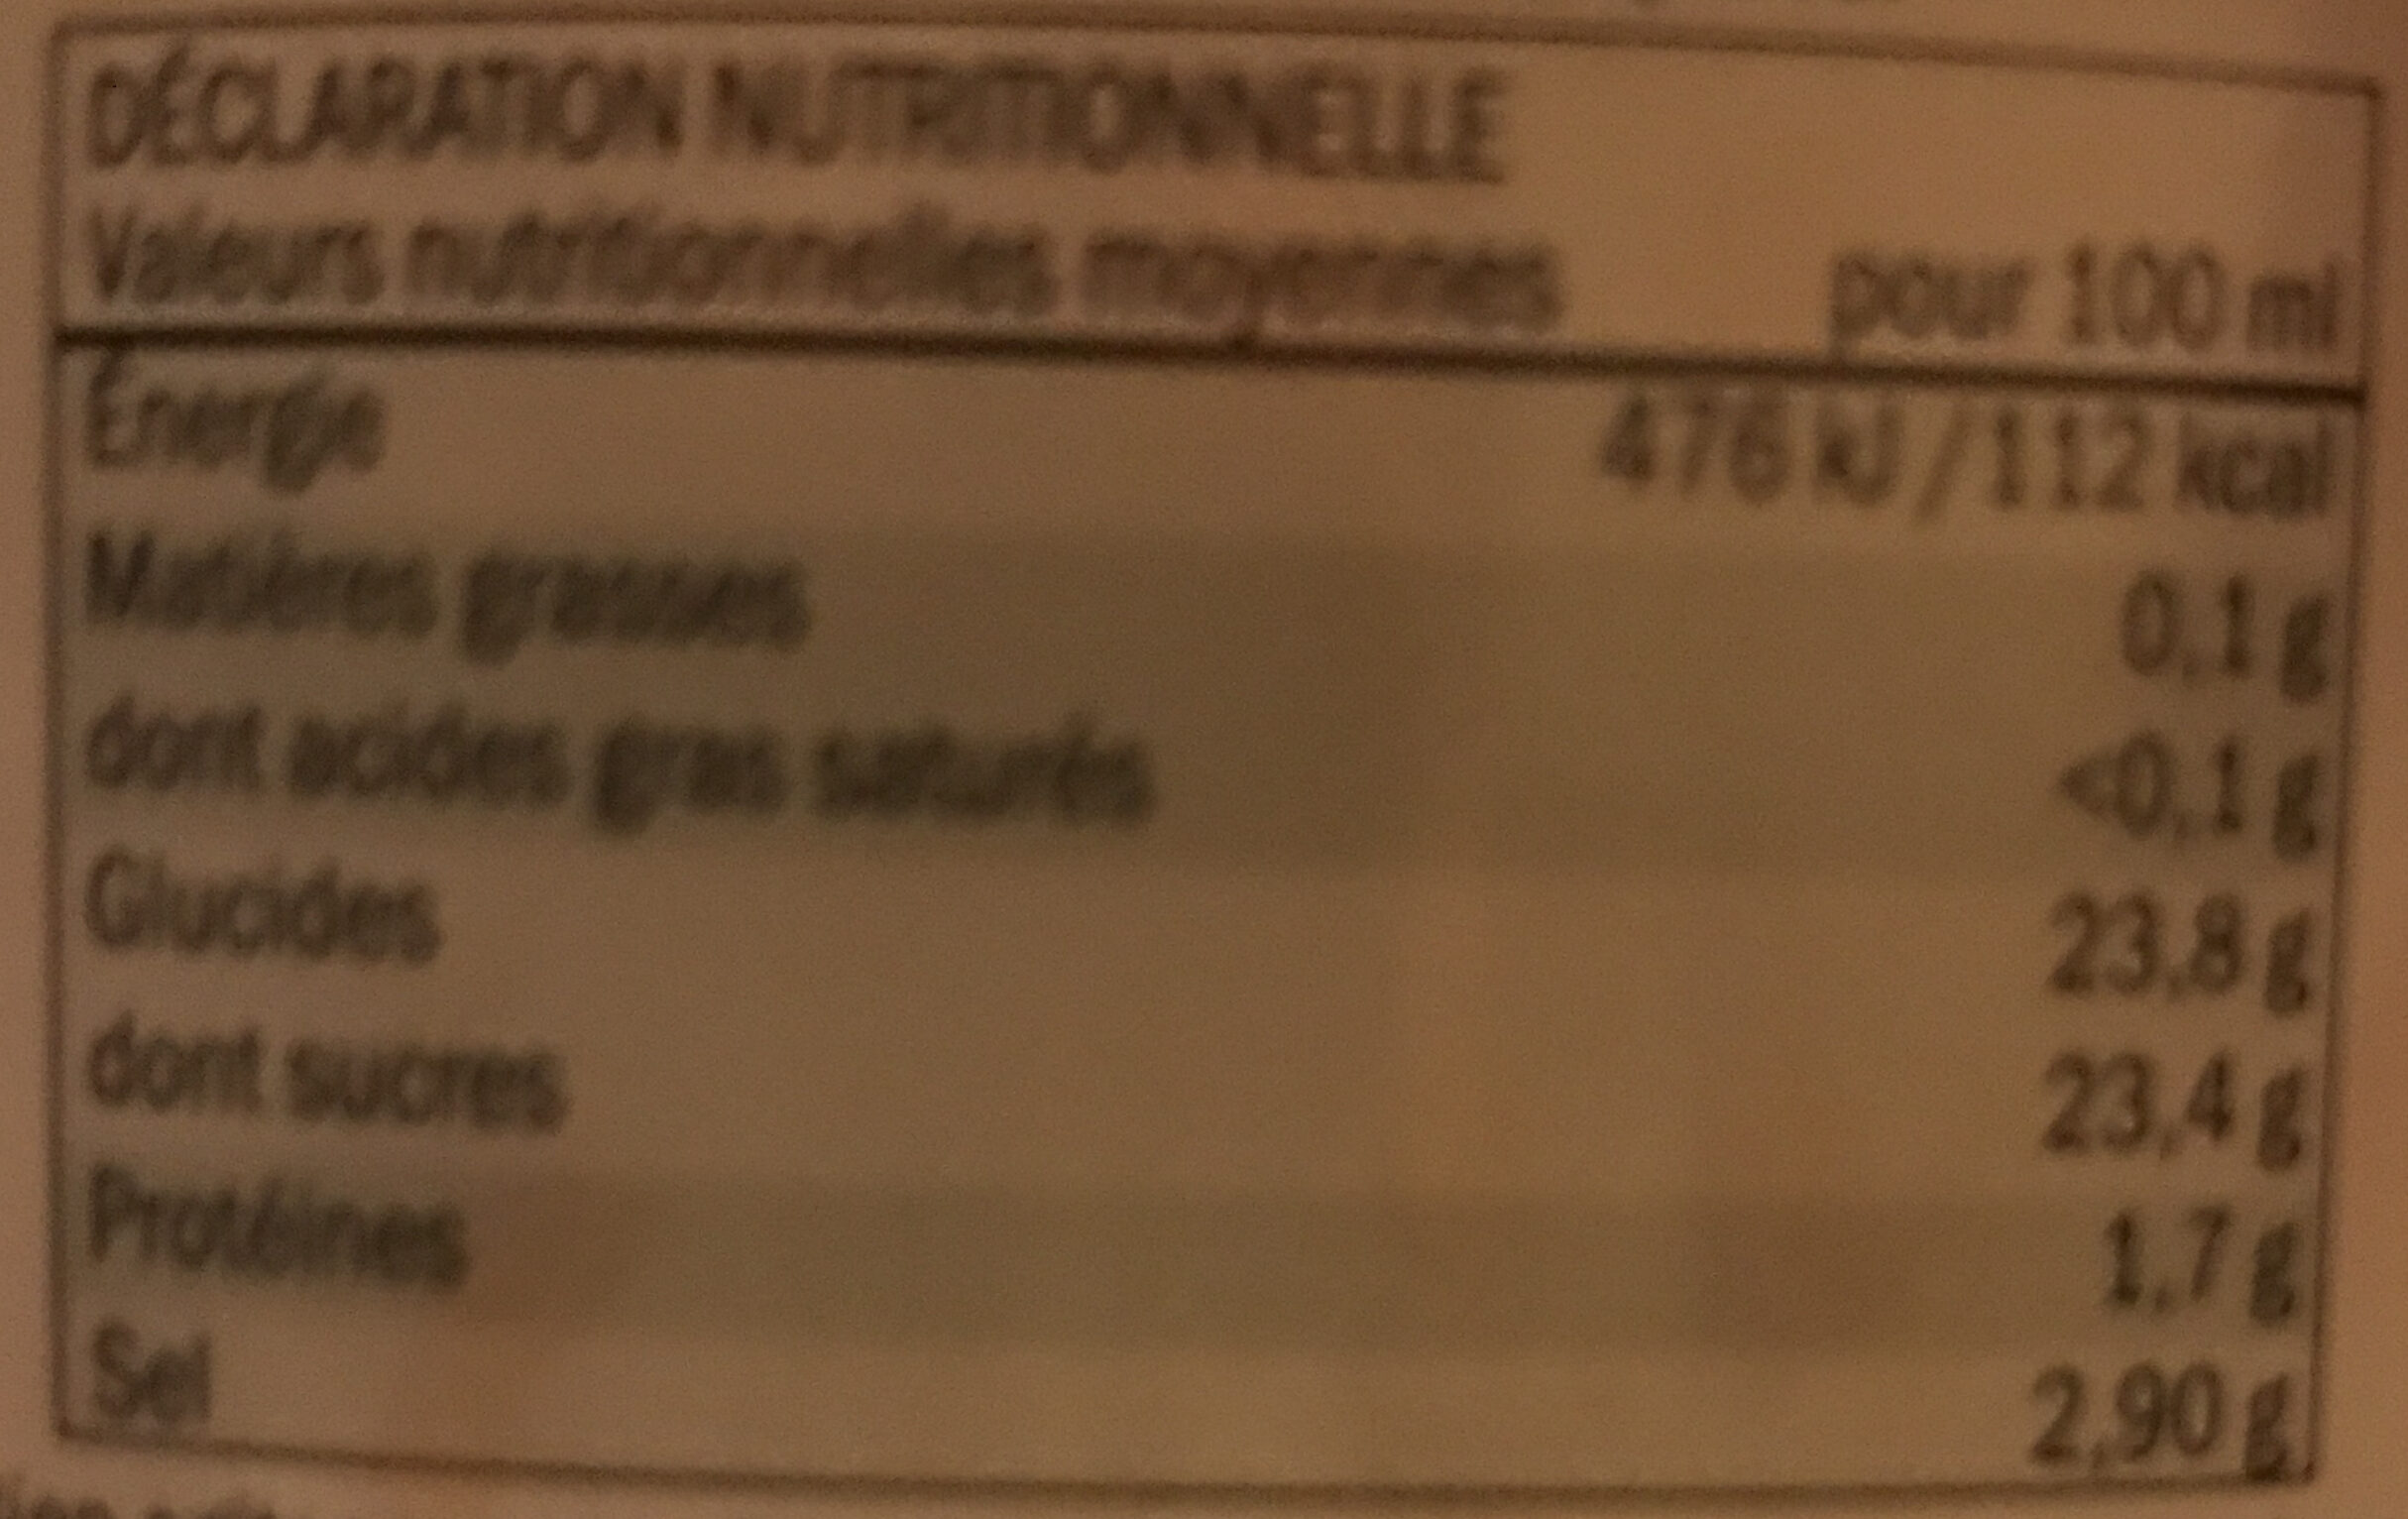 Tomatenketchup - Nutrition facts - fr